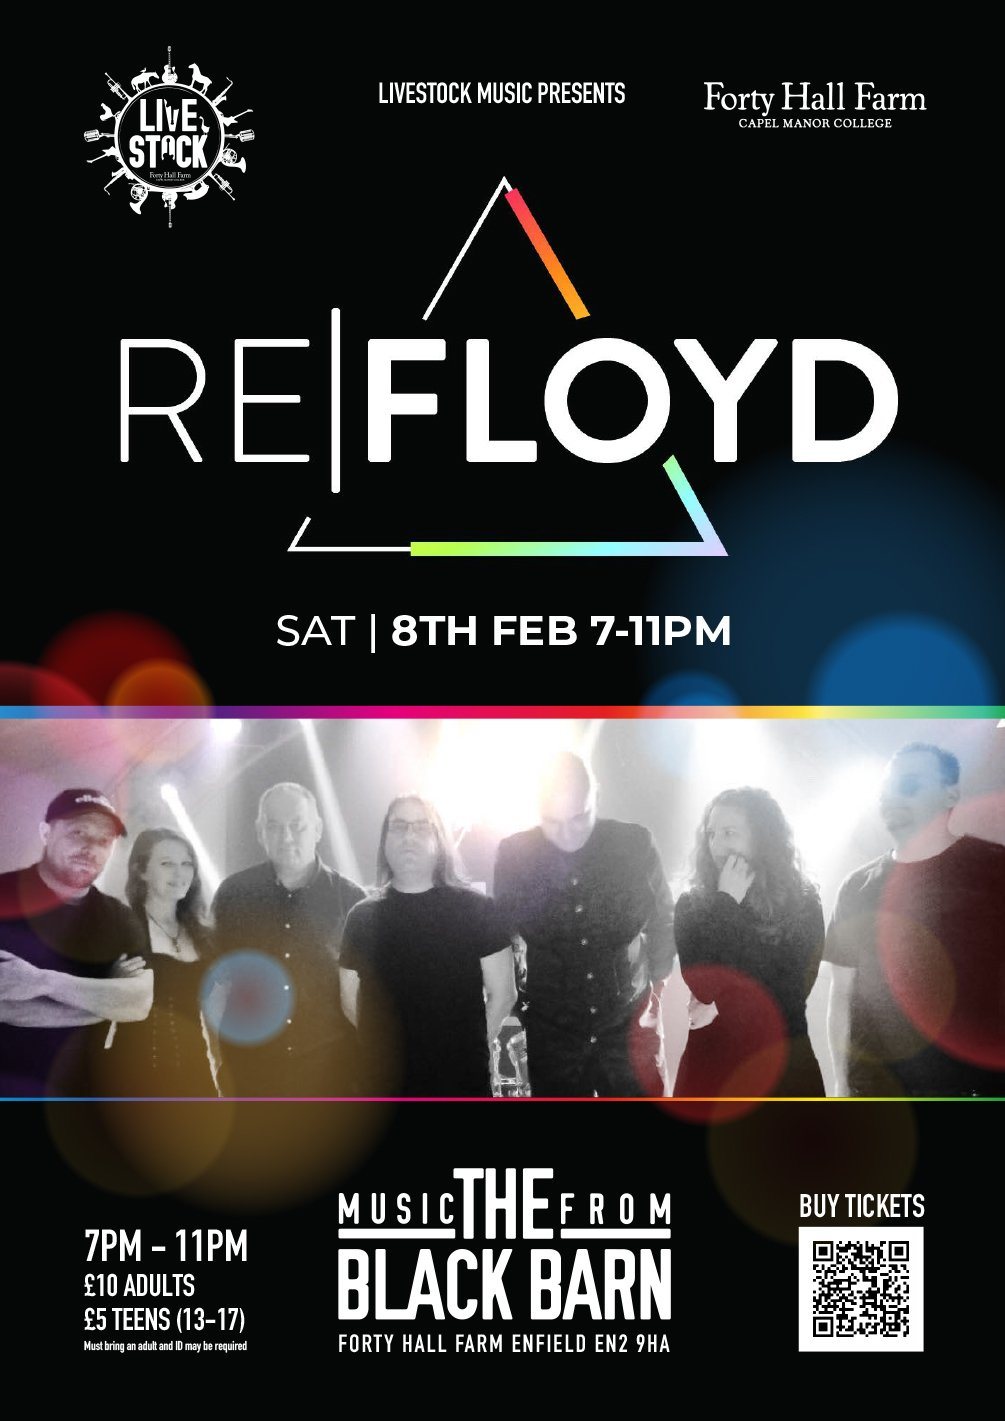 poster or flyer advertising event Music from the Black Barn: ReFloyd